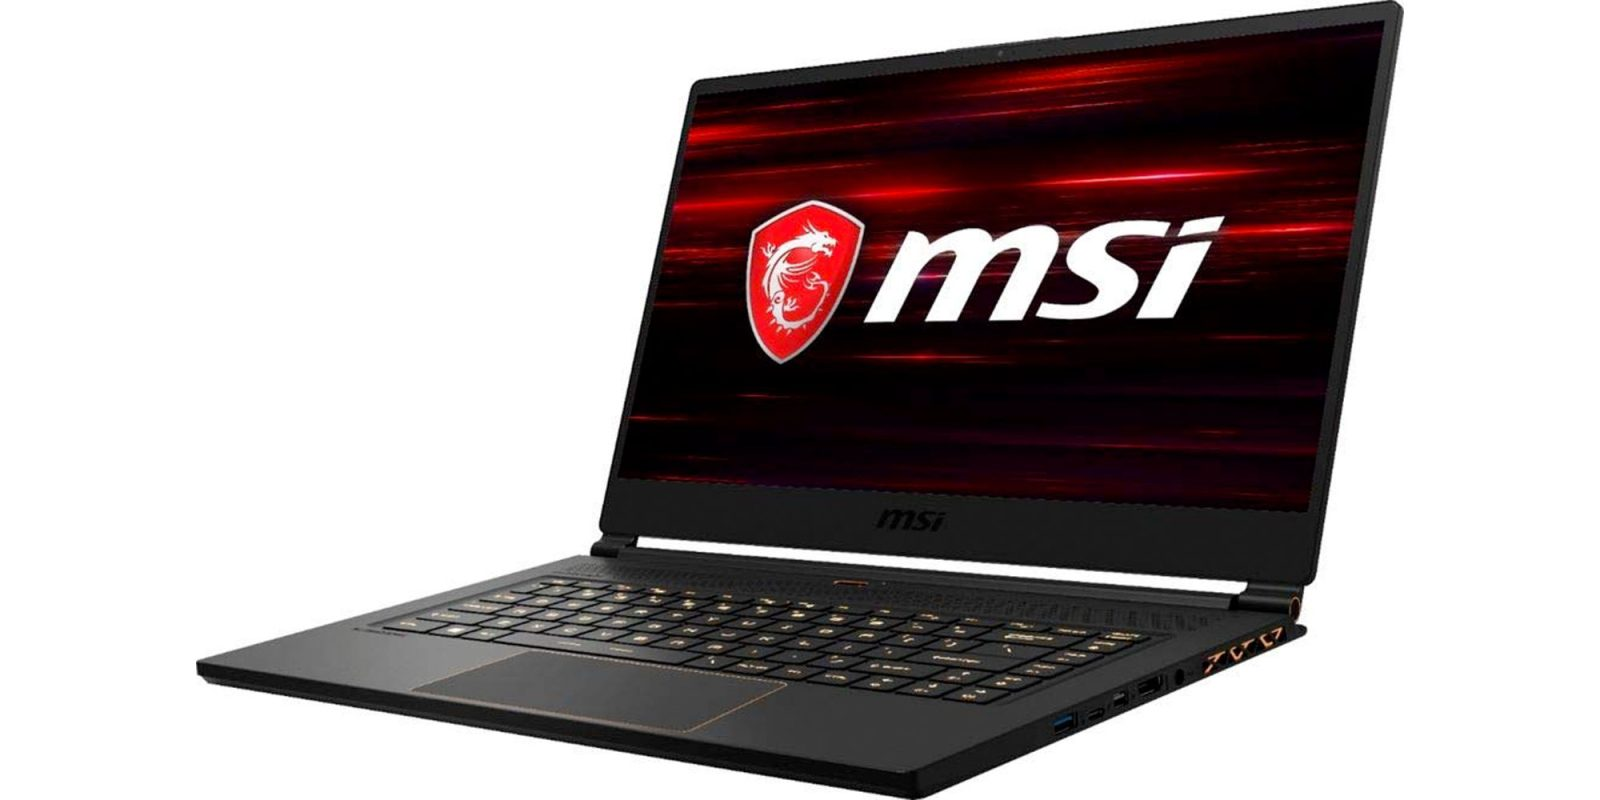 MSI's gaming laptop sports NVIDIA's RTX 2060, more for $1,350 ($300 off)